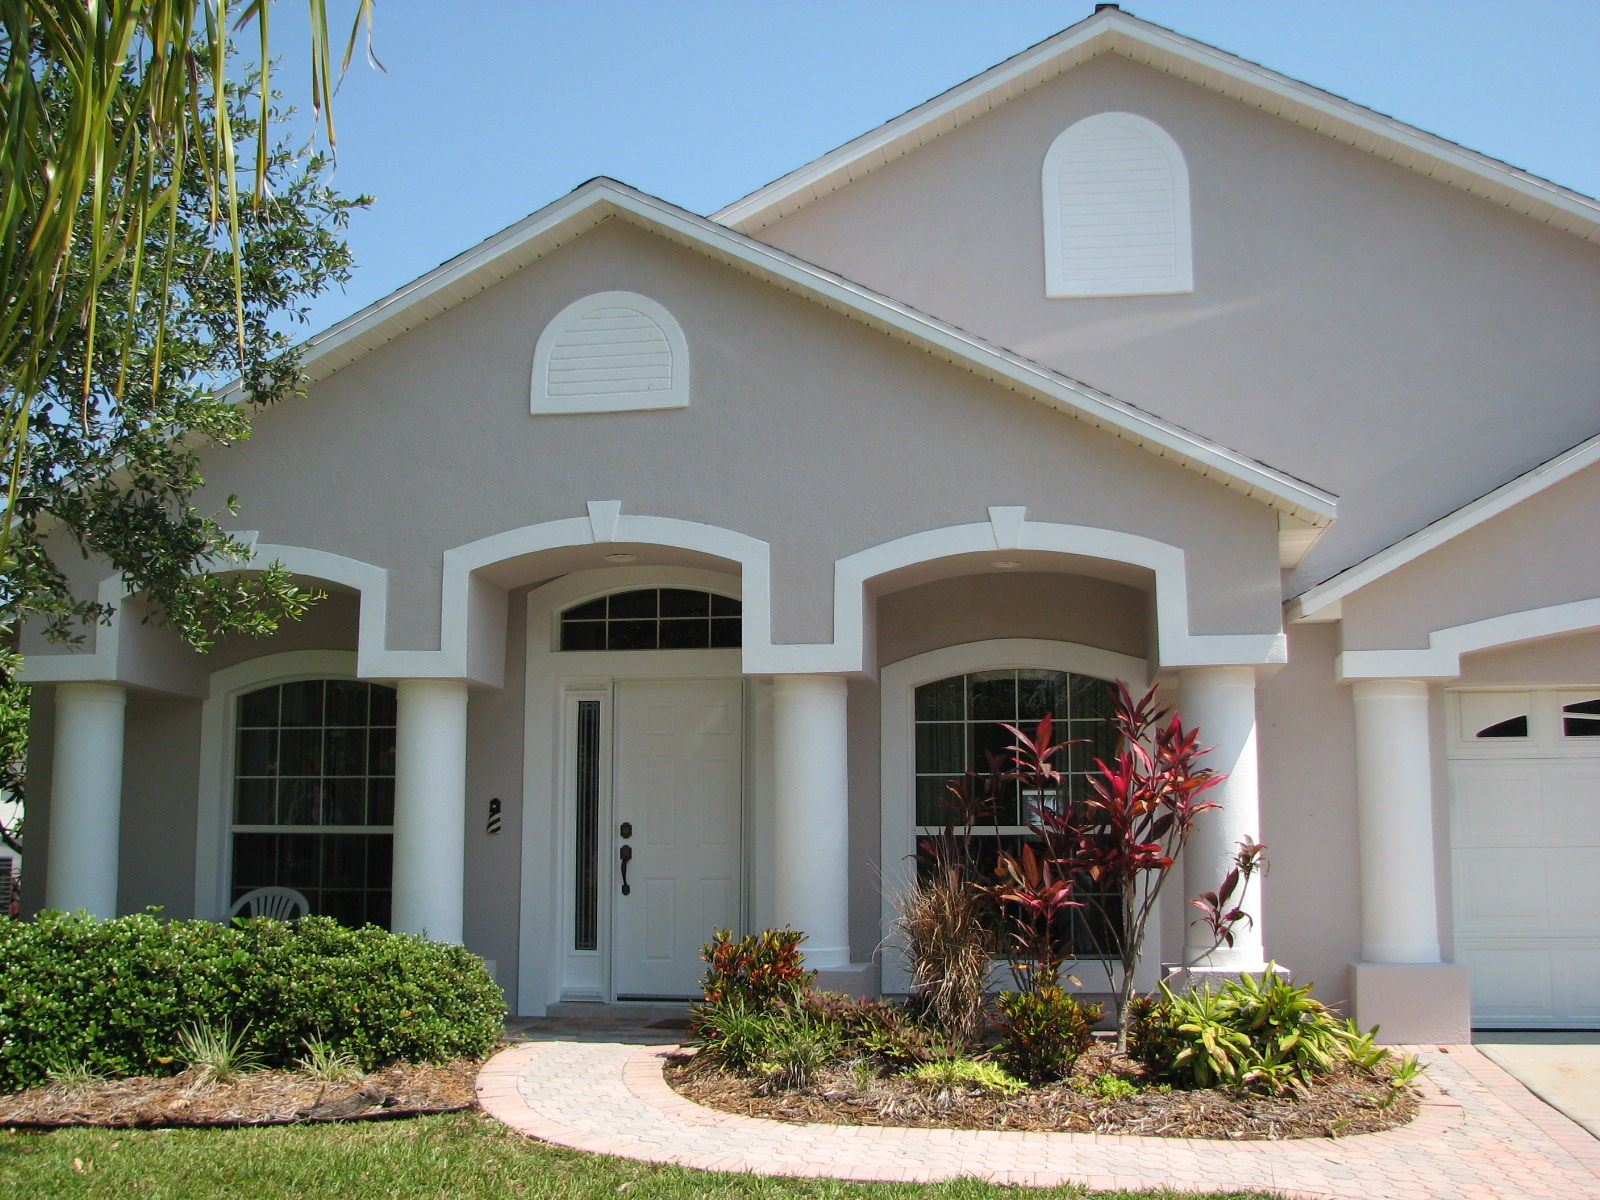 Exterior Paint Colors For Stucco Homes Exterior Paint: Bulging Stucco